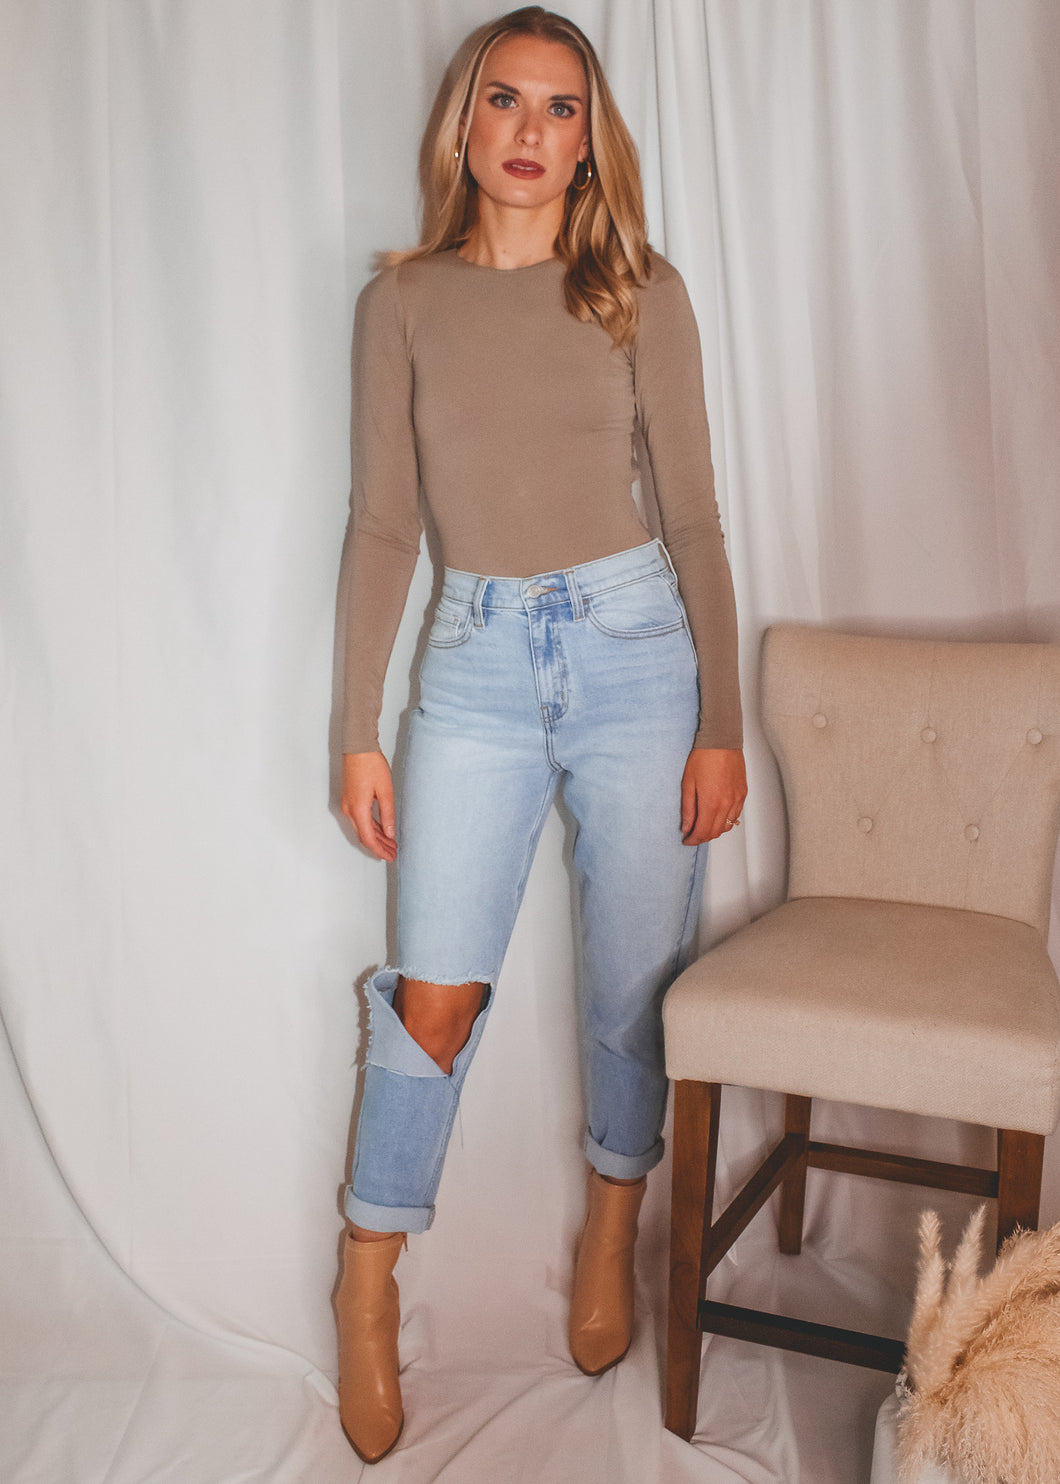 Too Good Boyfriend Jeans - Sugar & Spice Apparel Boutique